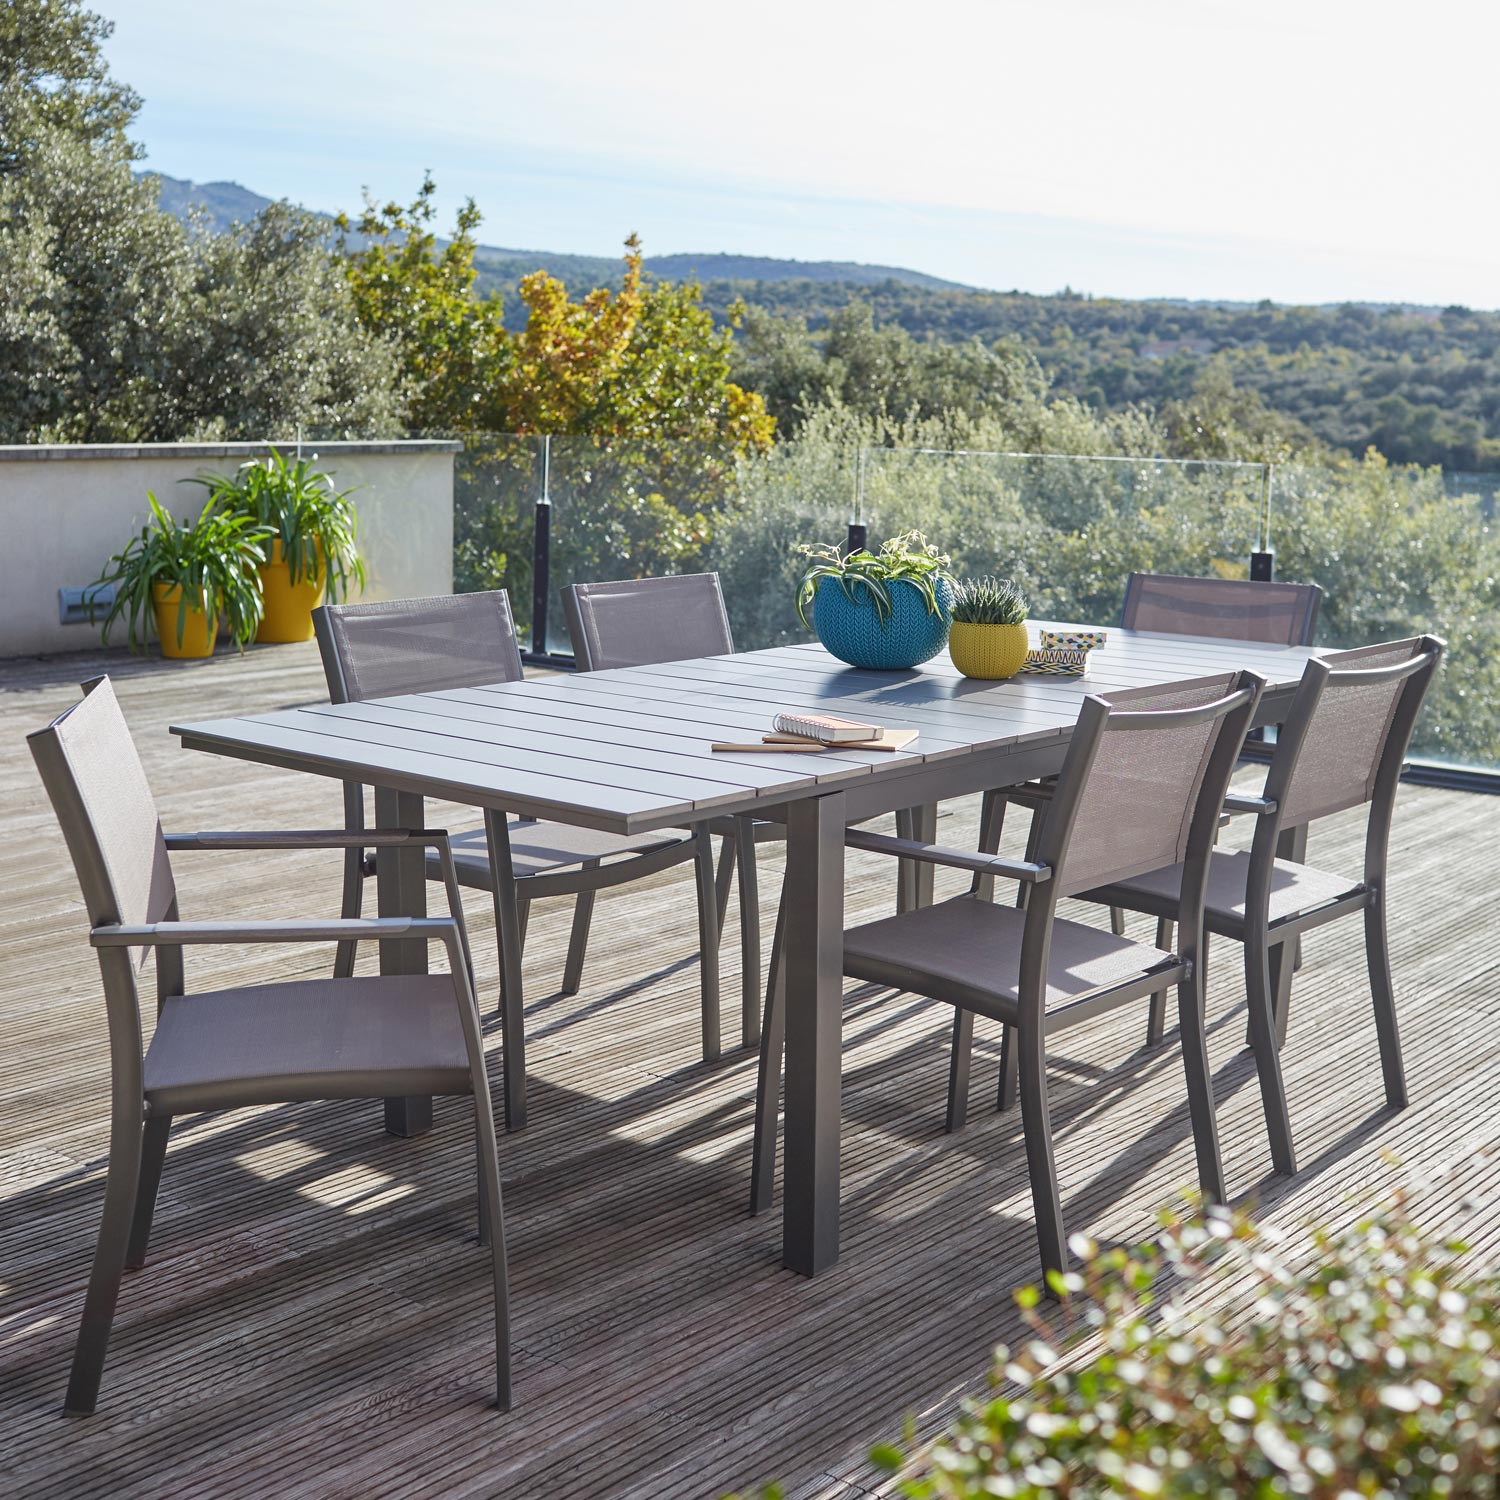 Salon de jardin salerno gris 6 personnes leroy merlin for Table extensible leroy merlin